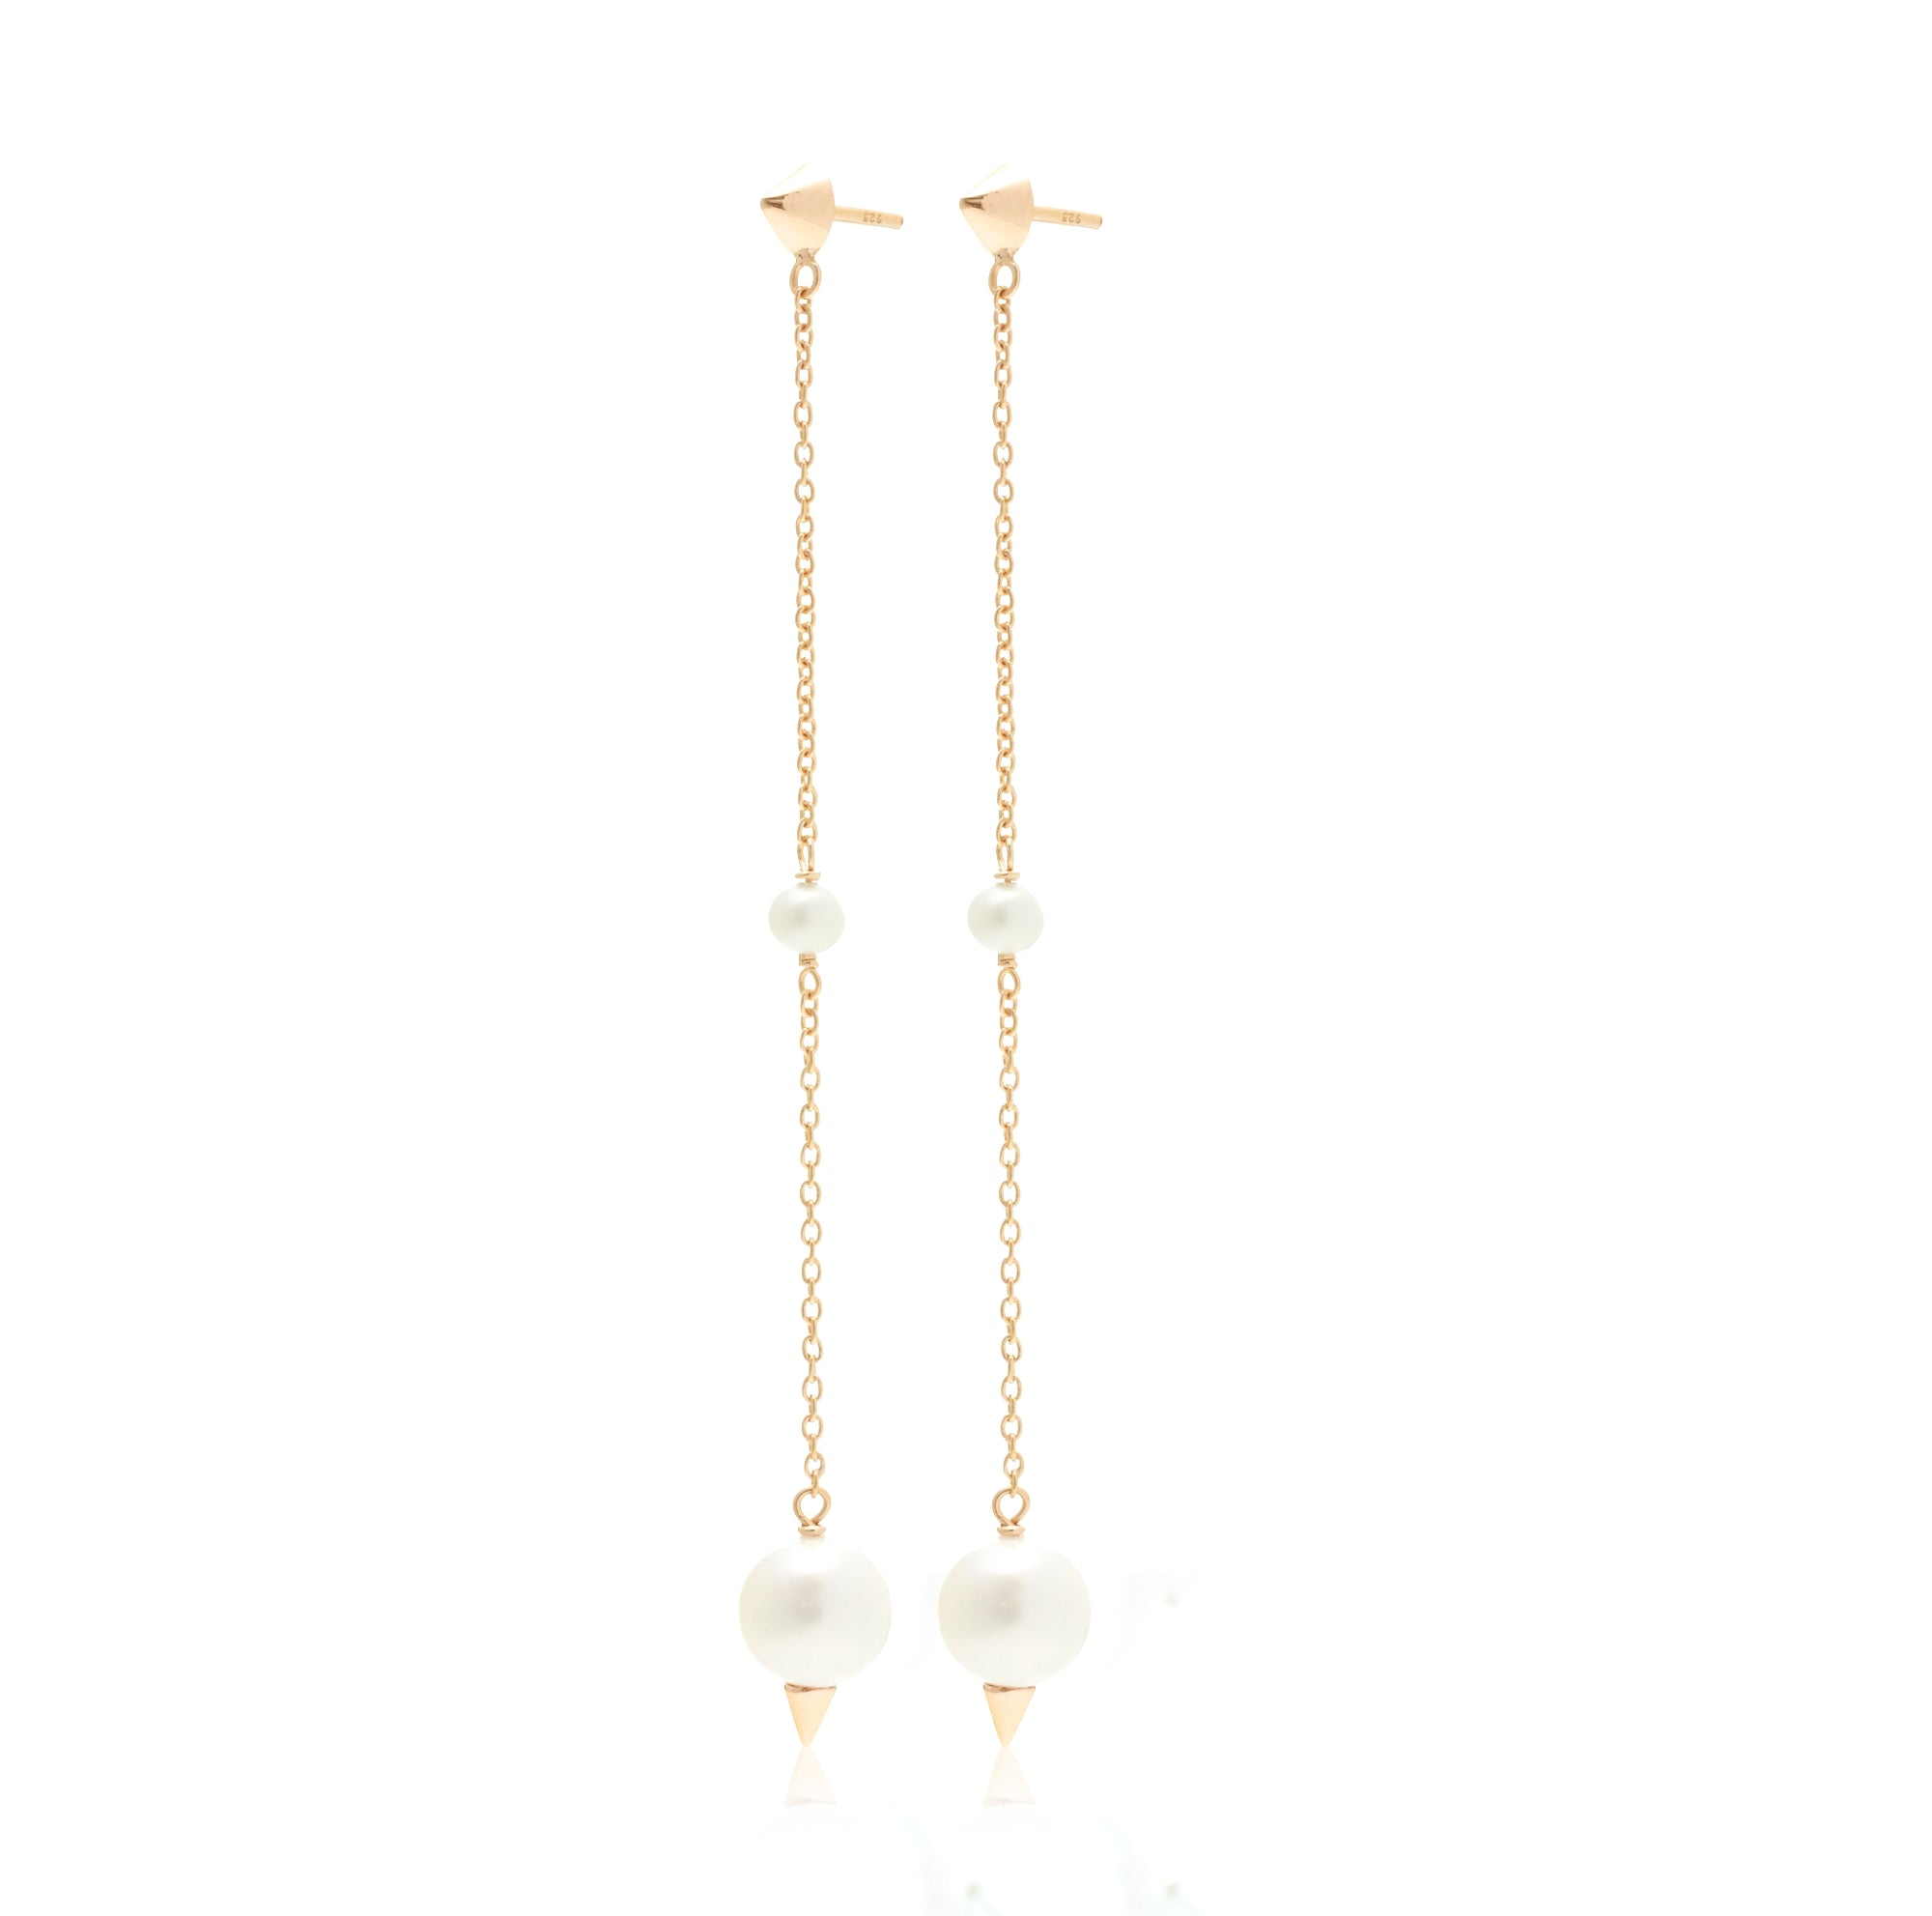 Silk & Steel Jewellery The Unexpected Pearl and Spike Gold  earrings